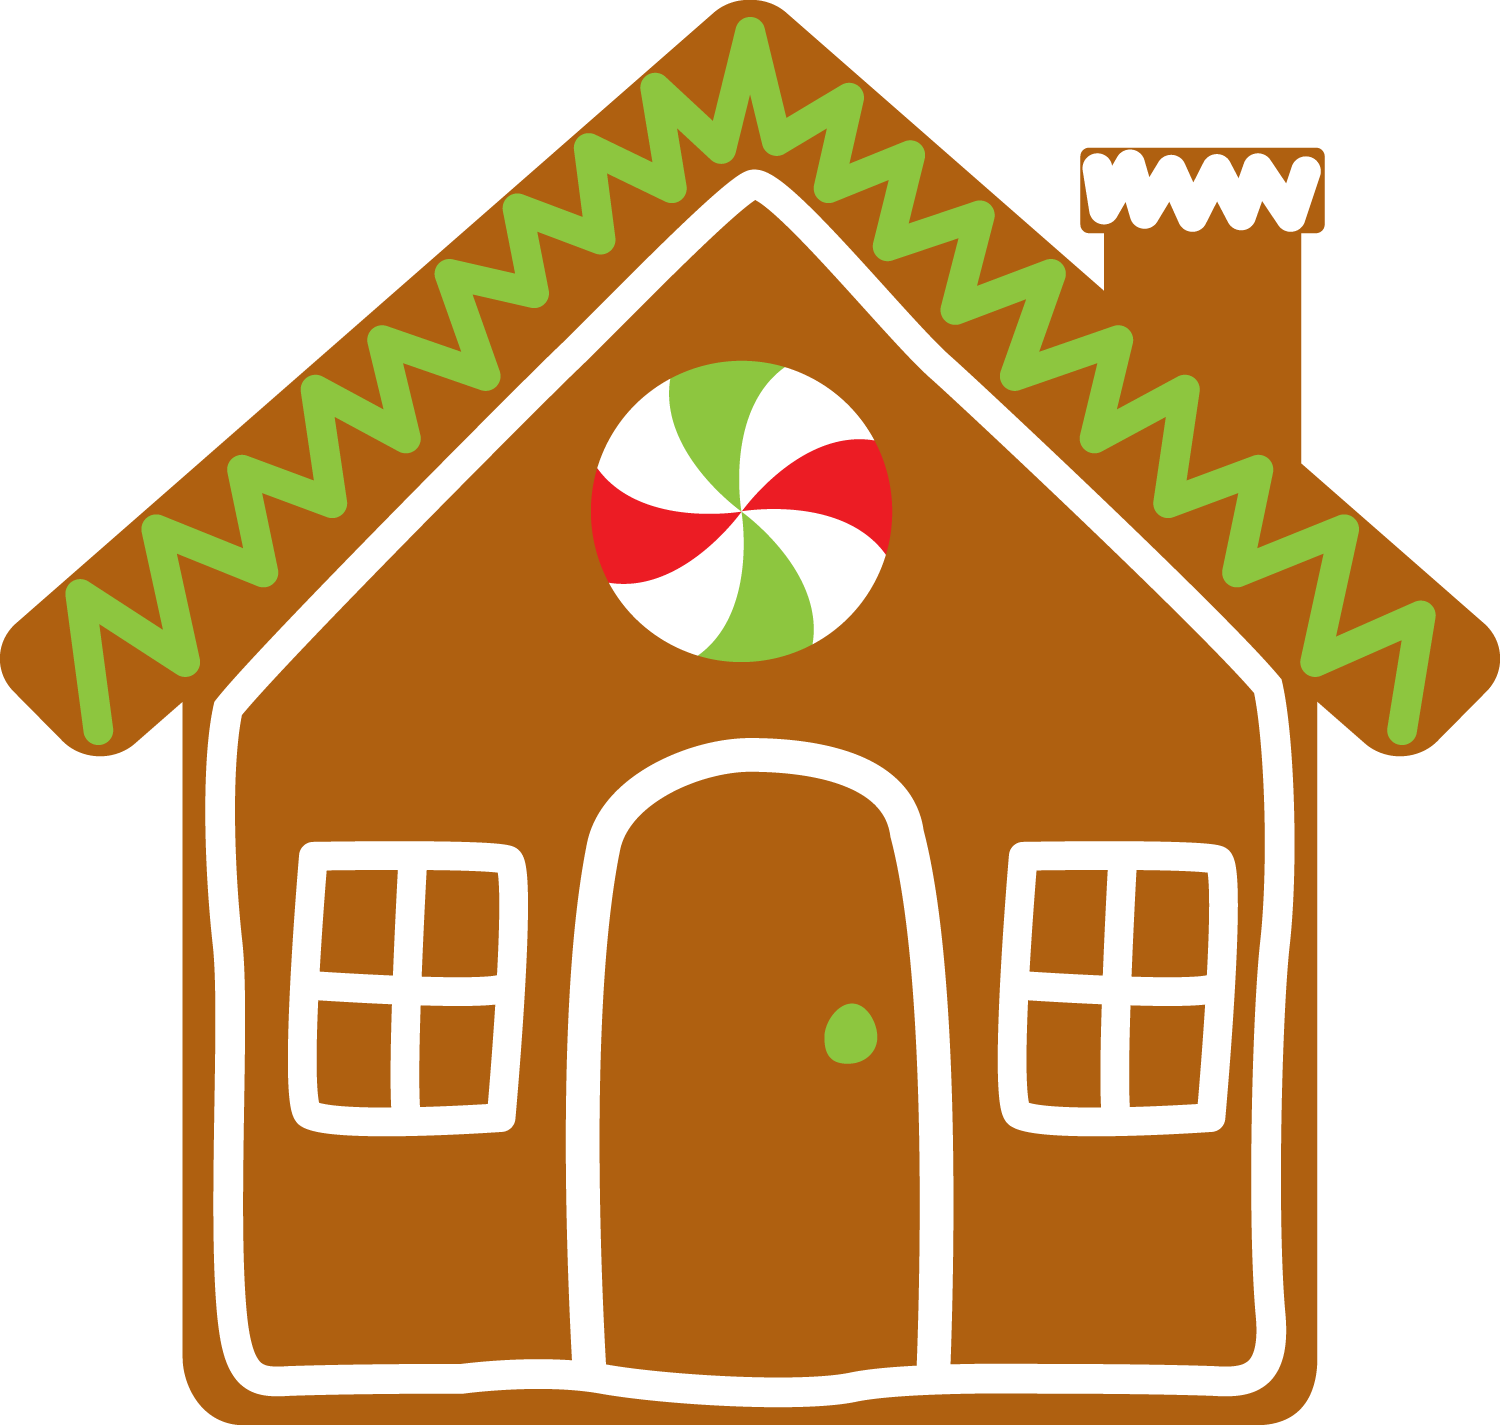 House at getdrawings com. Home clipart christmas